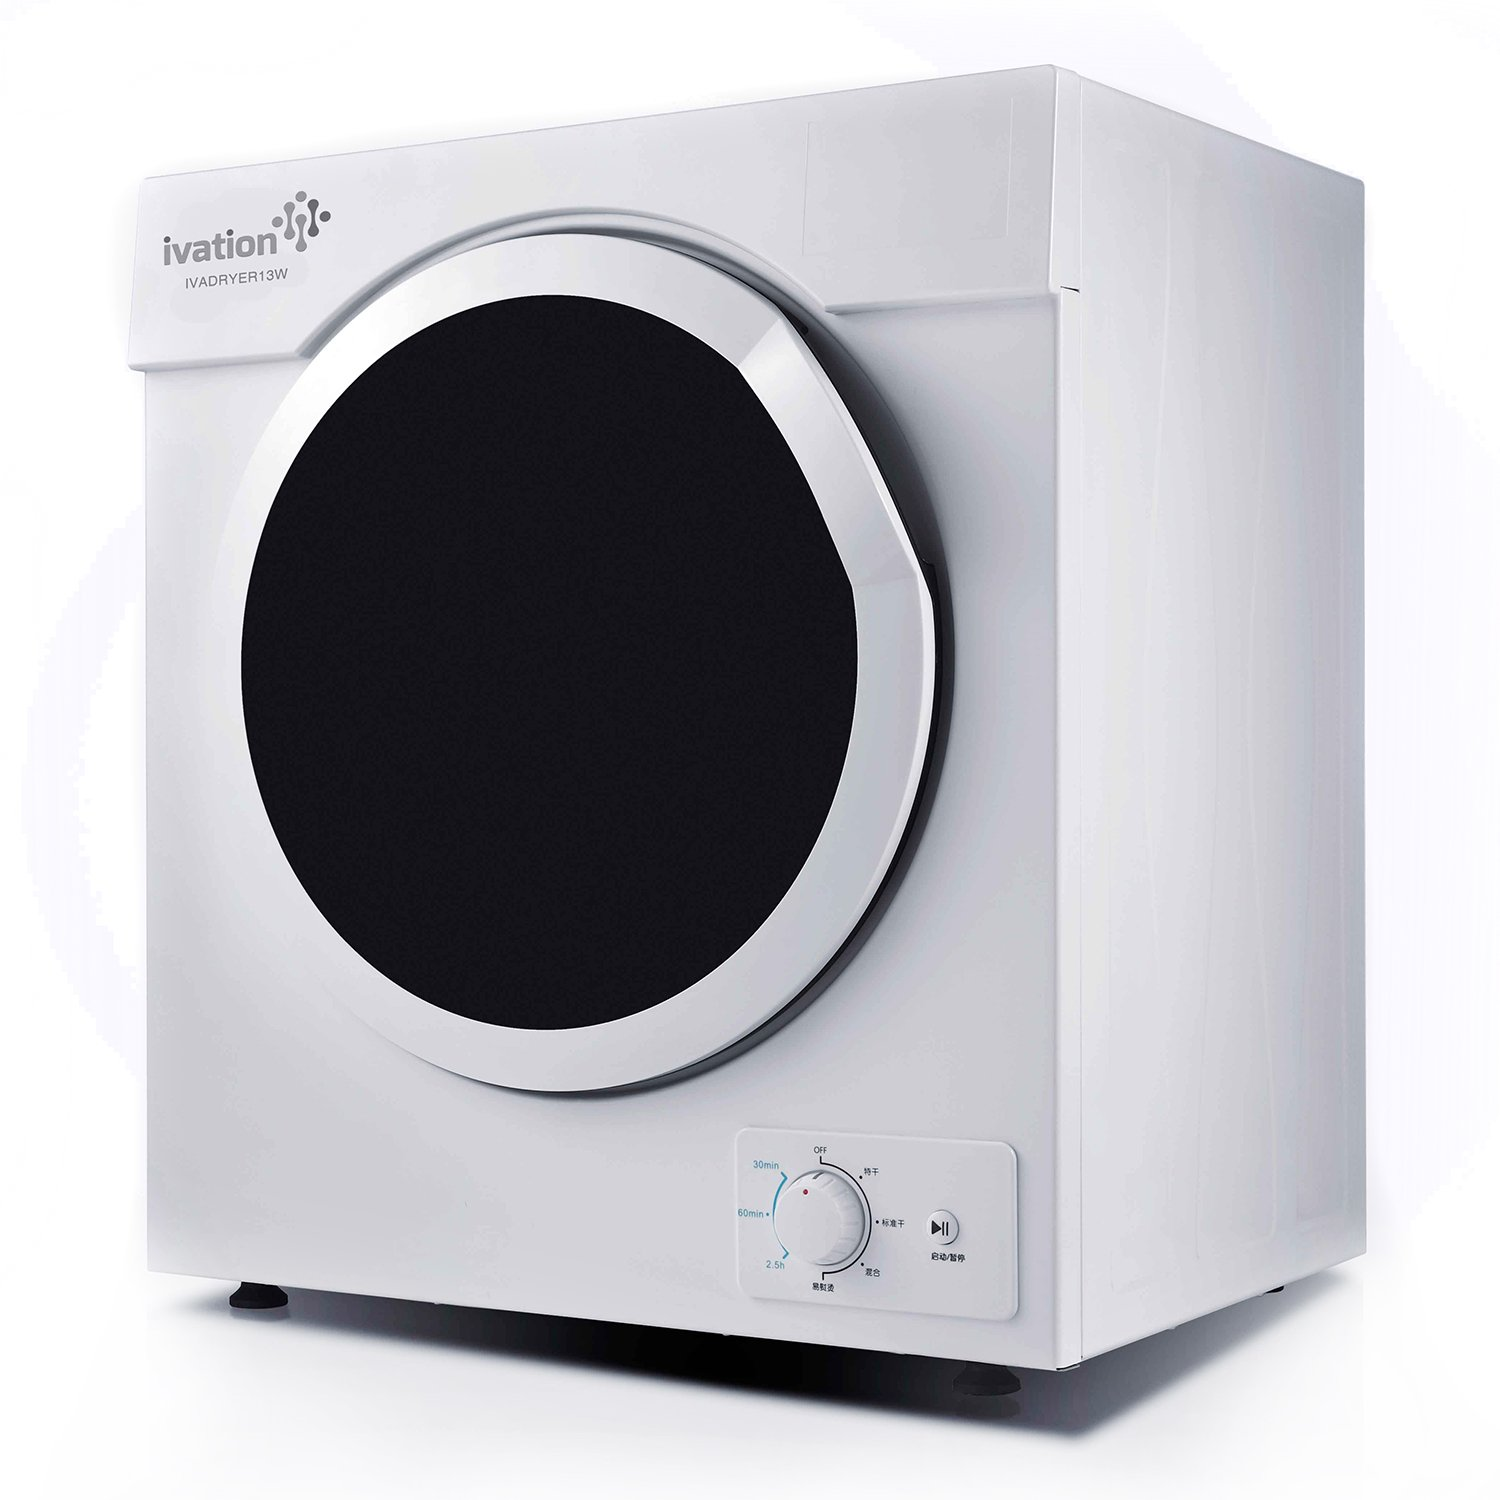 Ivation Compact Portable Ventless Electric Dryer for Apartments, Condos, Townhomes, Dorm Rooms & RVs – 7 Settings for All Load Types – White